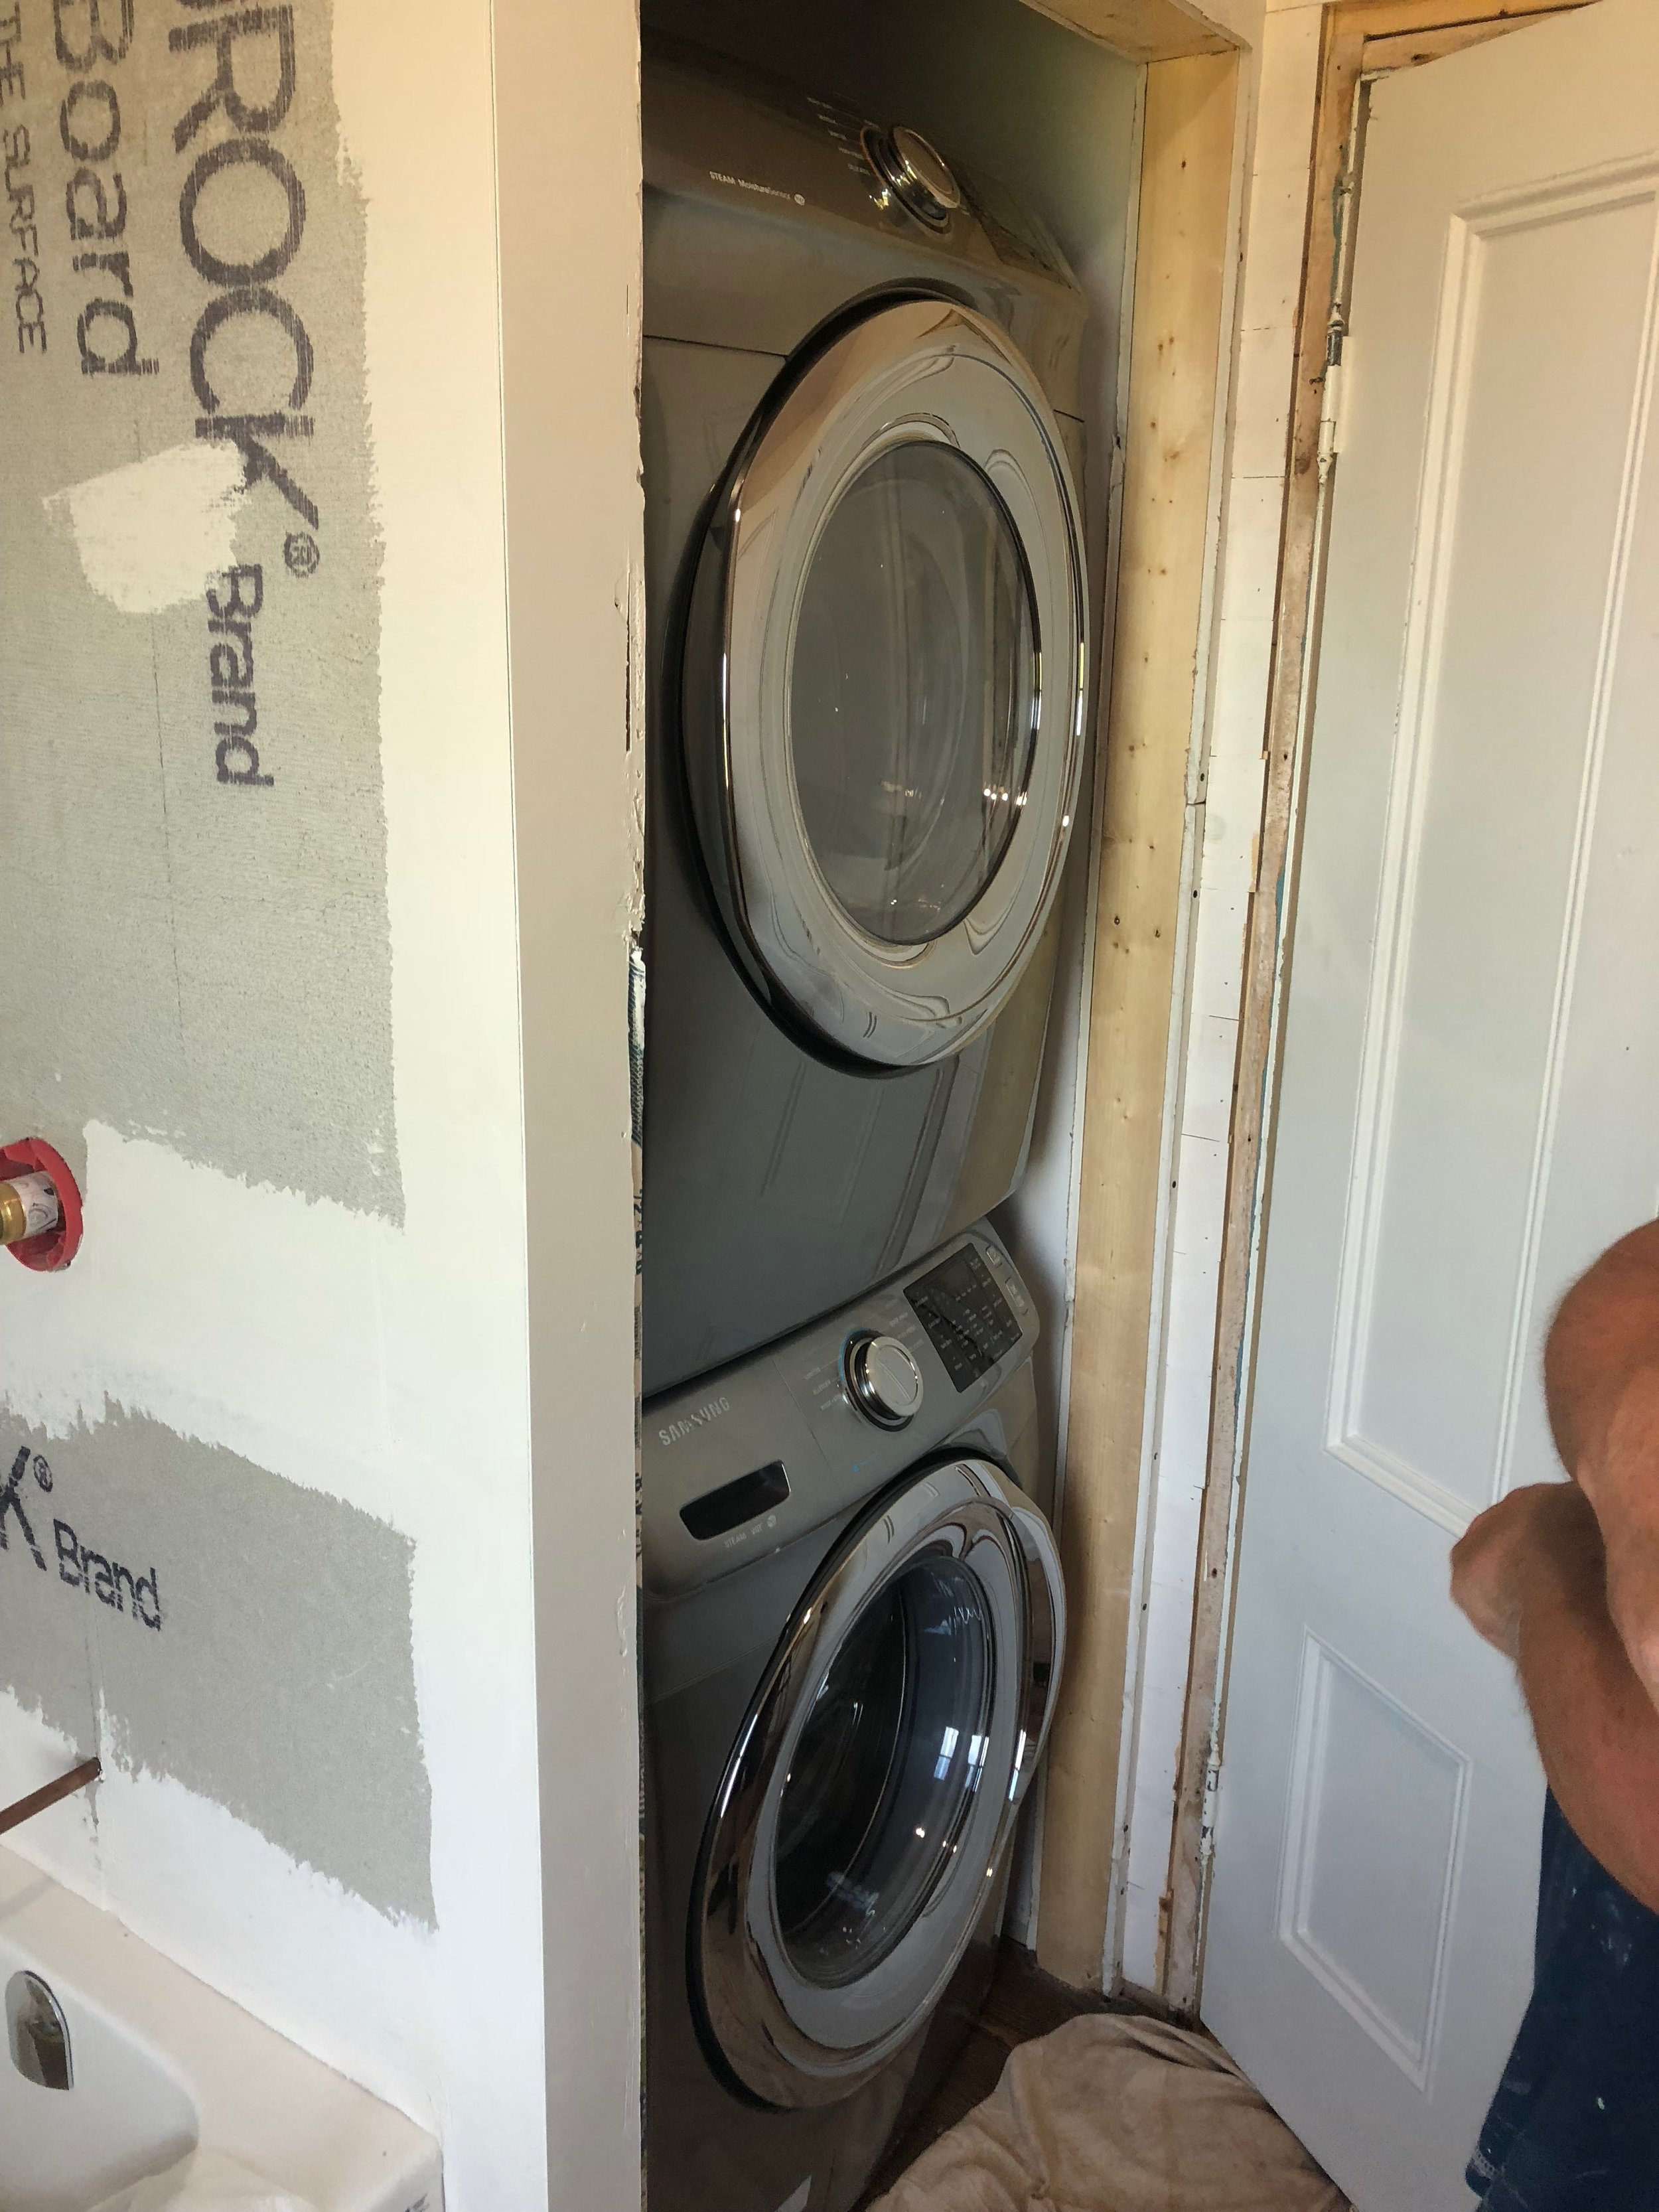 Our little laundry